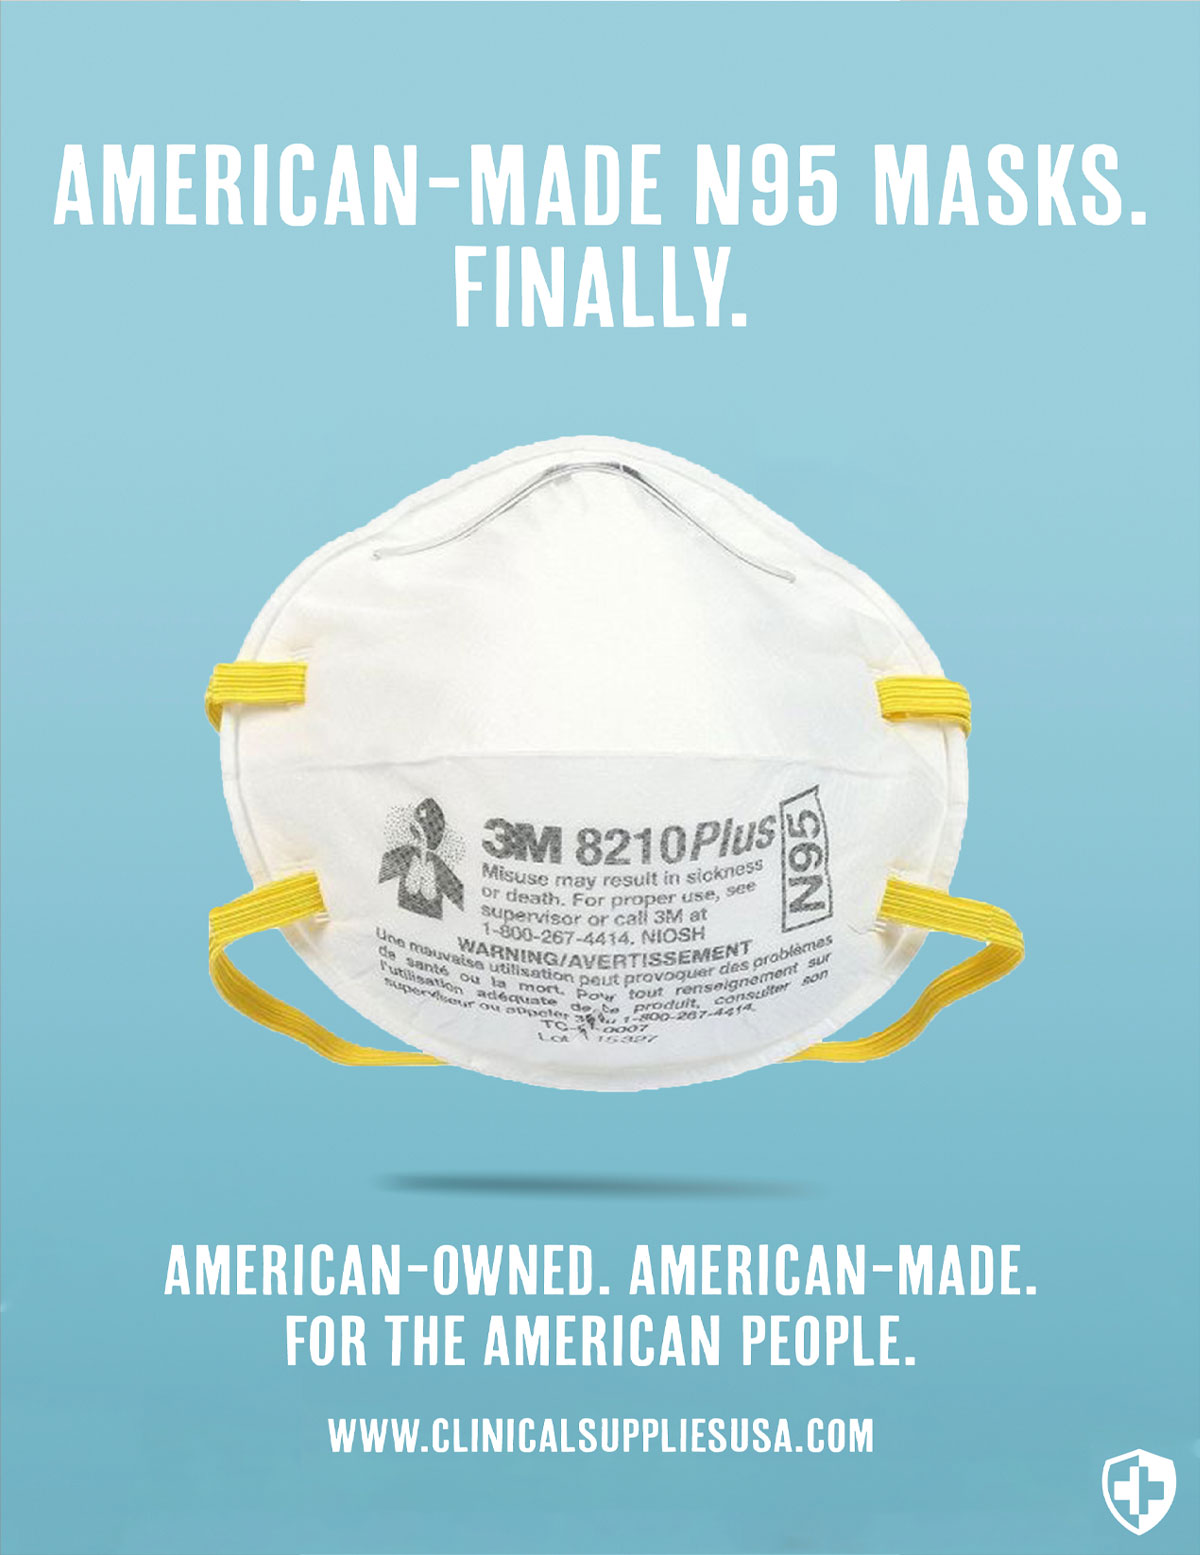 American-Made N95 Masks Finally. American-Owned. America-Made. For The American People. www.clinicalsuppliesusa.com